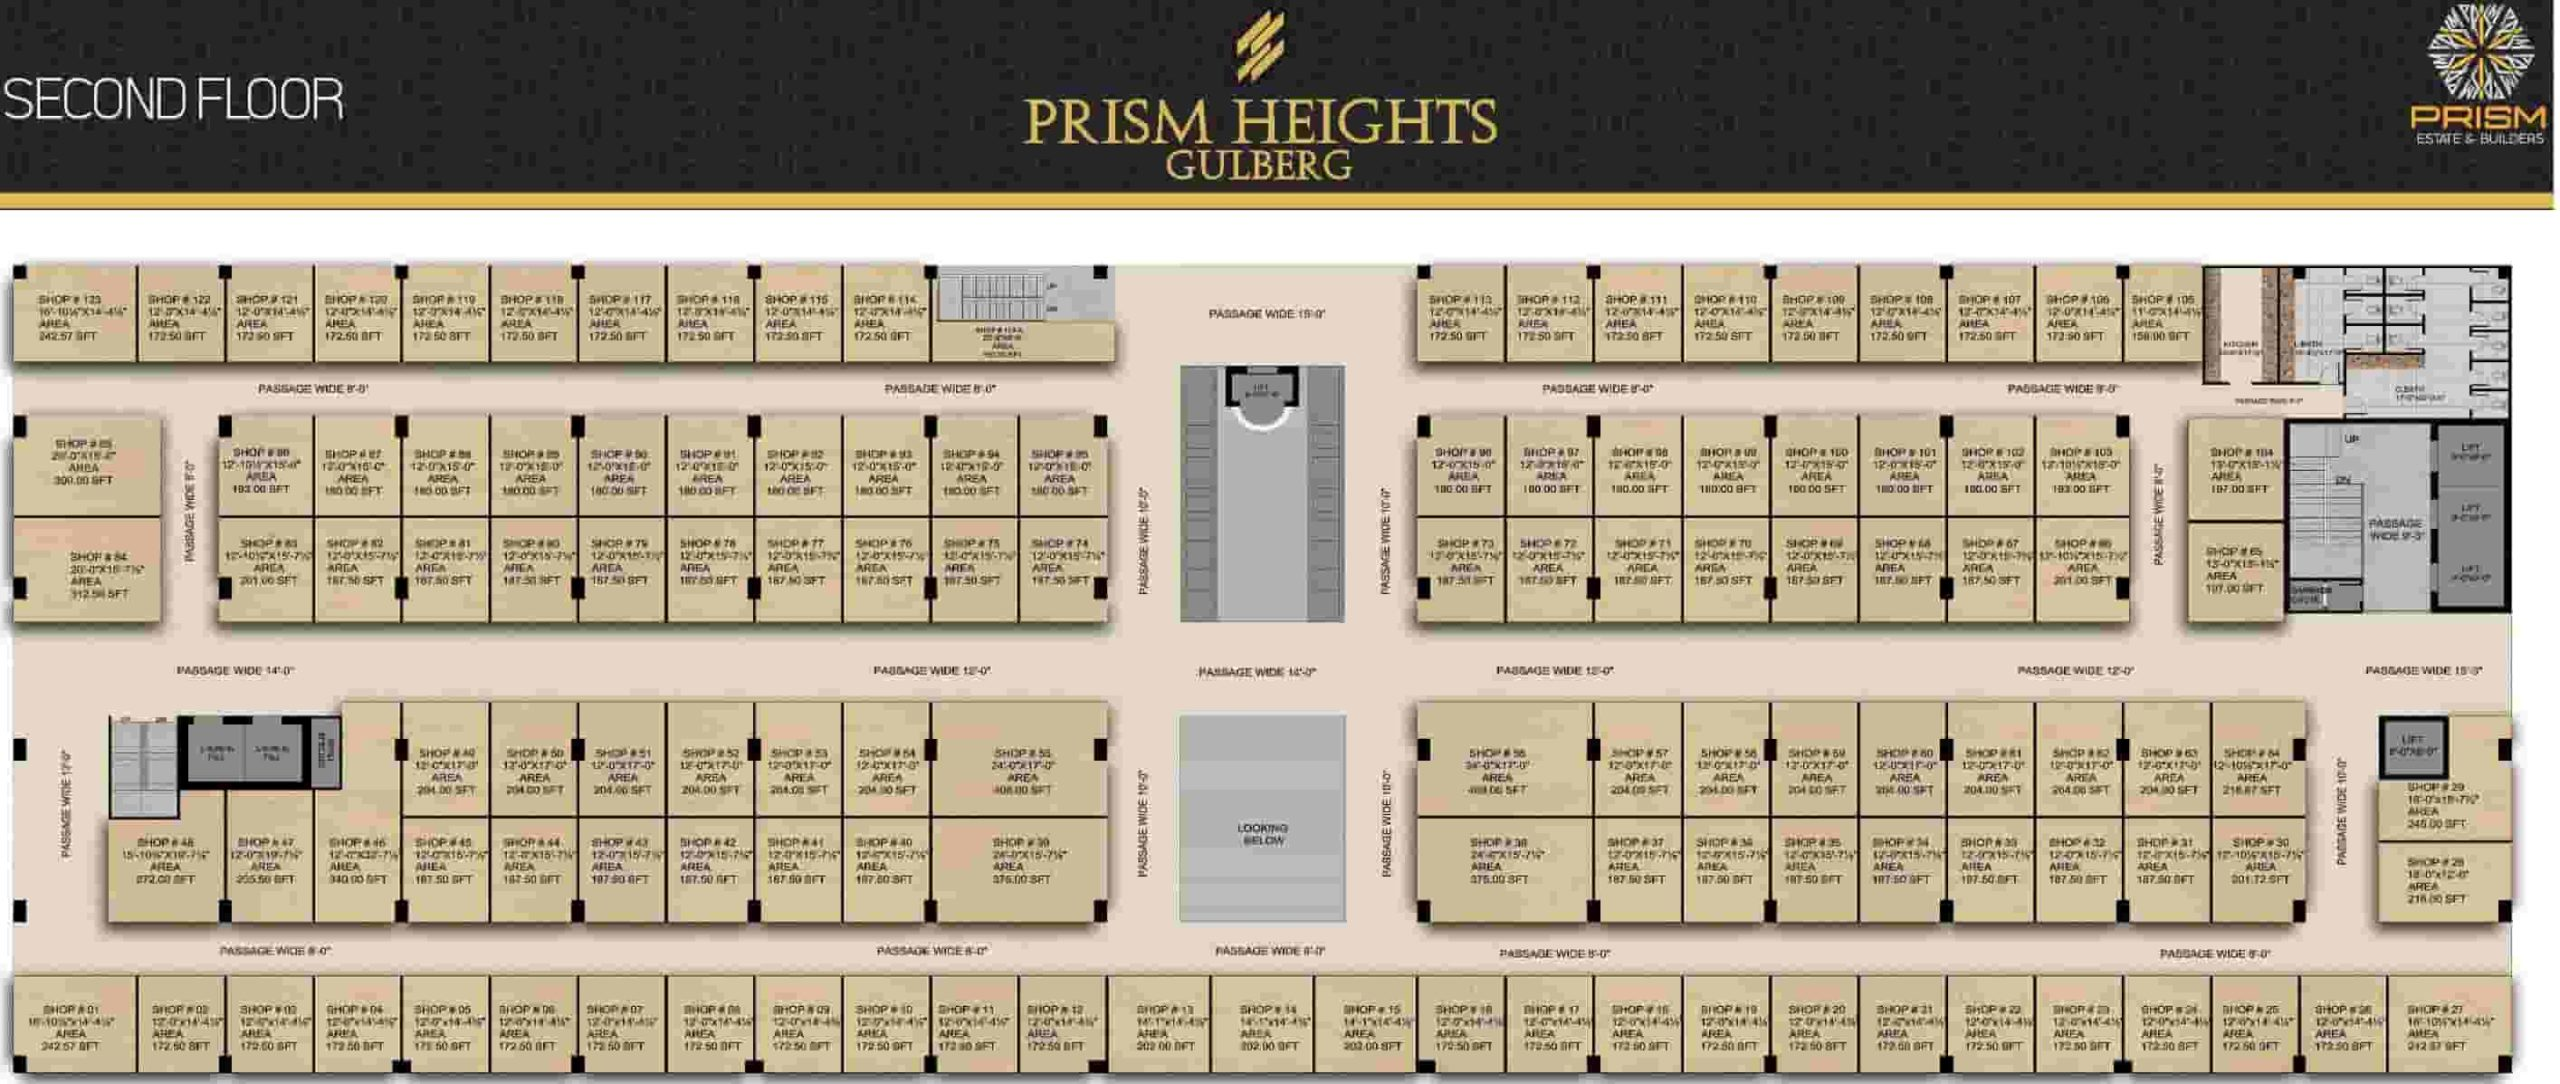 Prism Heights 2nd Floor Plan